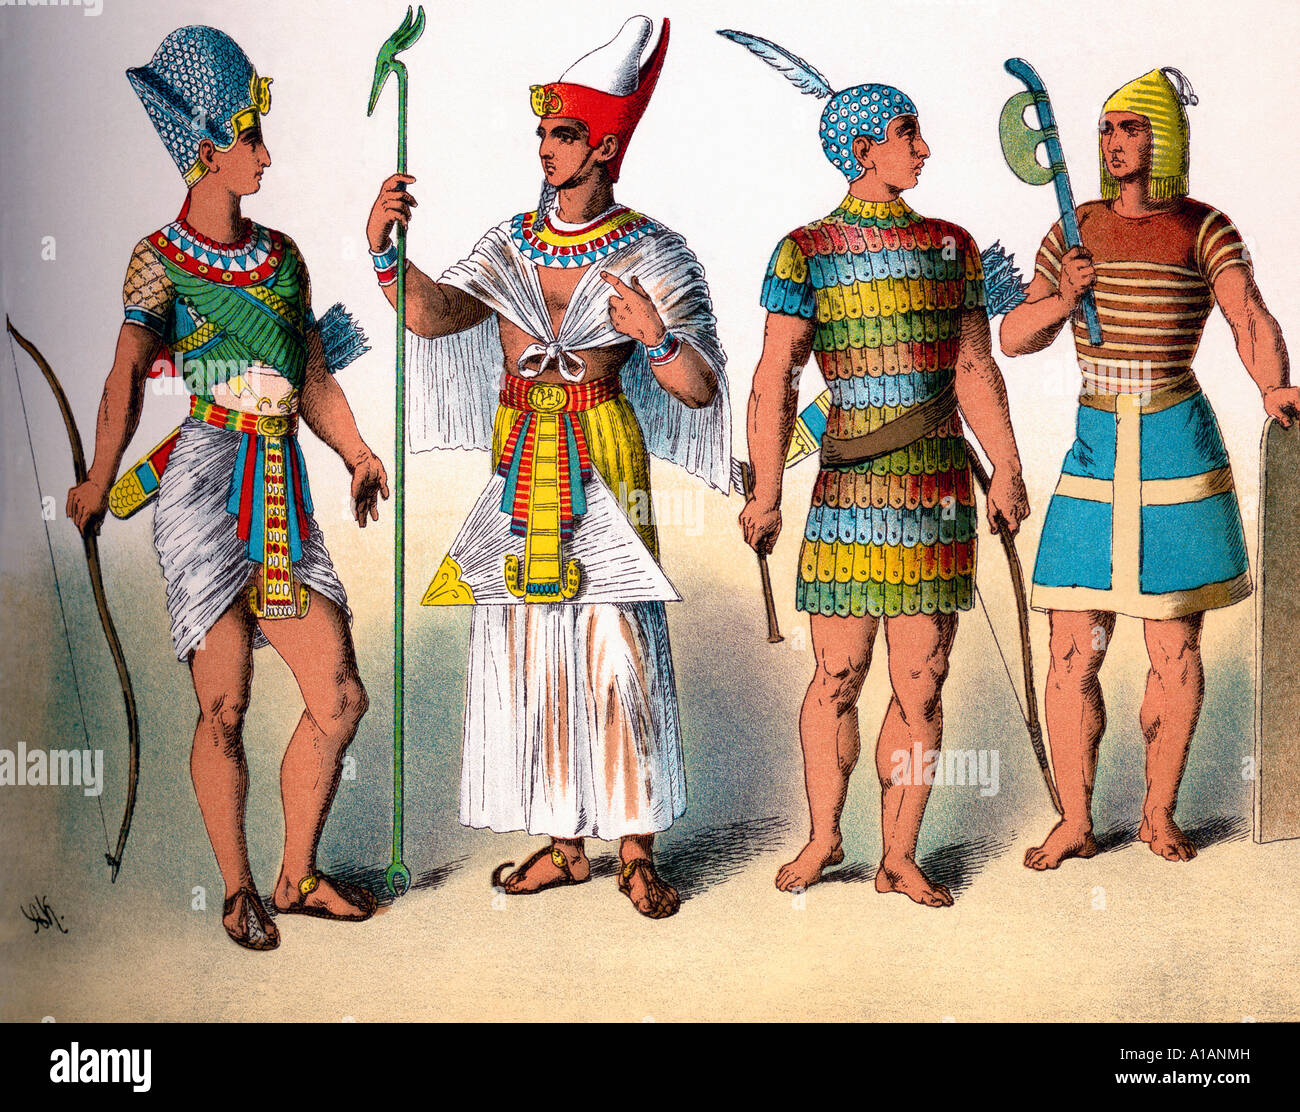 Dress of Ancient Egyptian King and Warriors - Stock Image